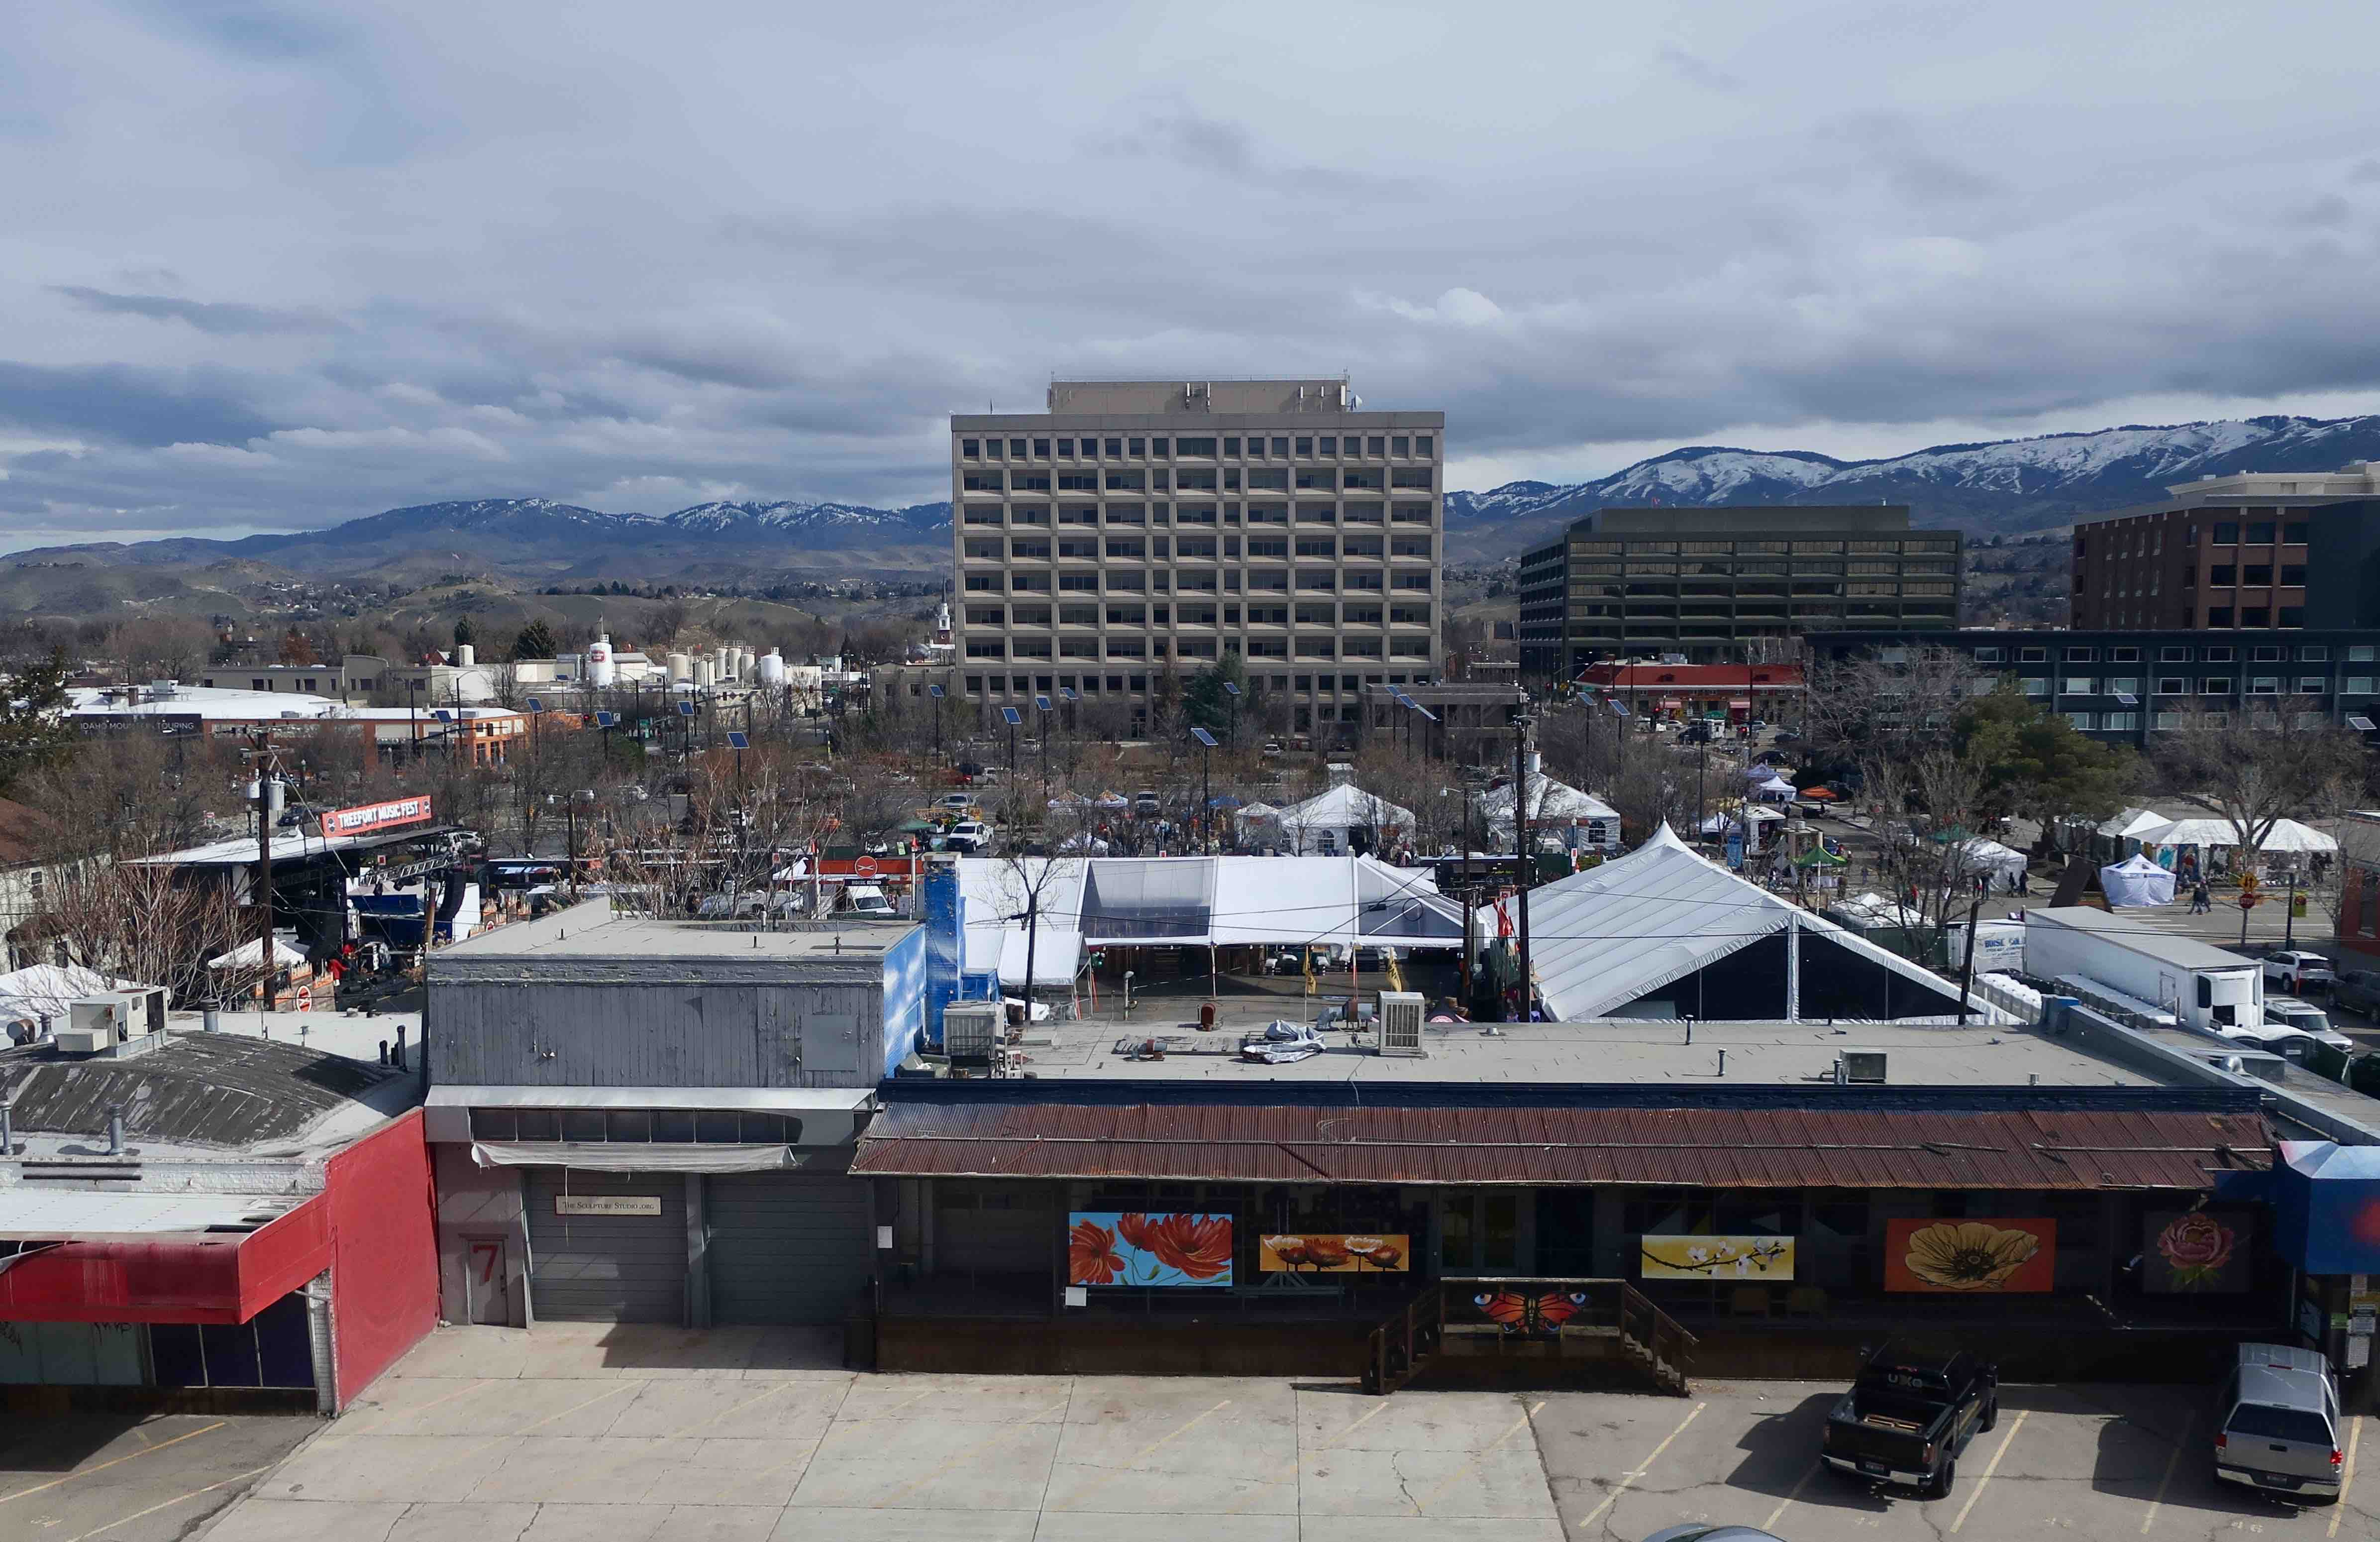 Looking over Boise and the outdoor stage at the 2019 Treefort Music Fest.